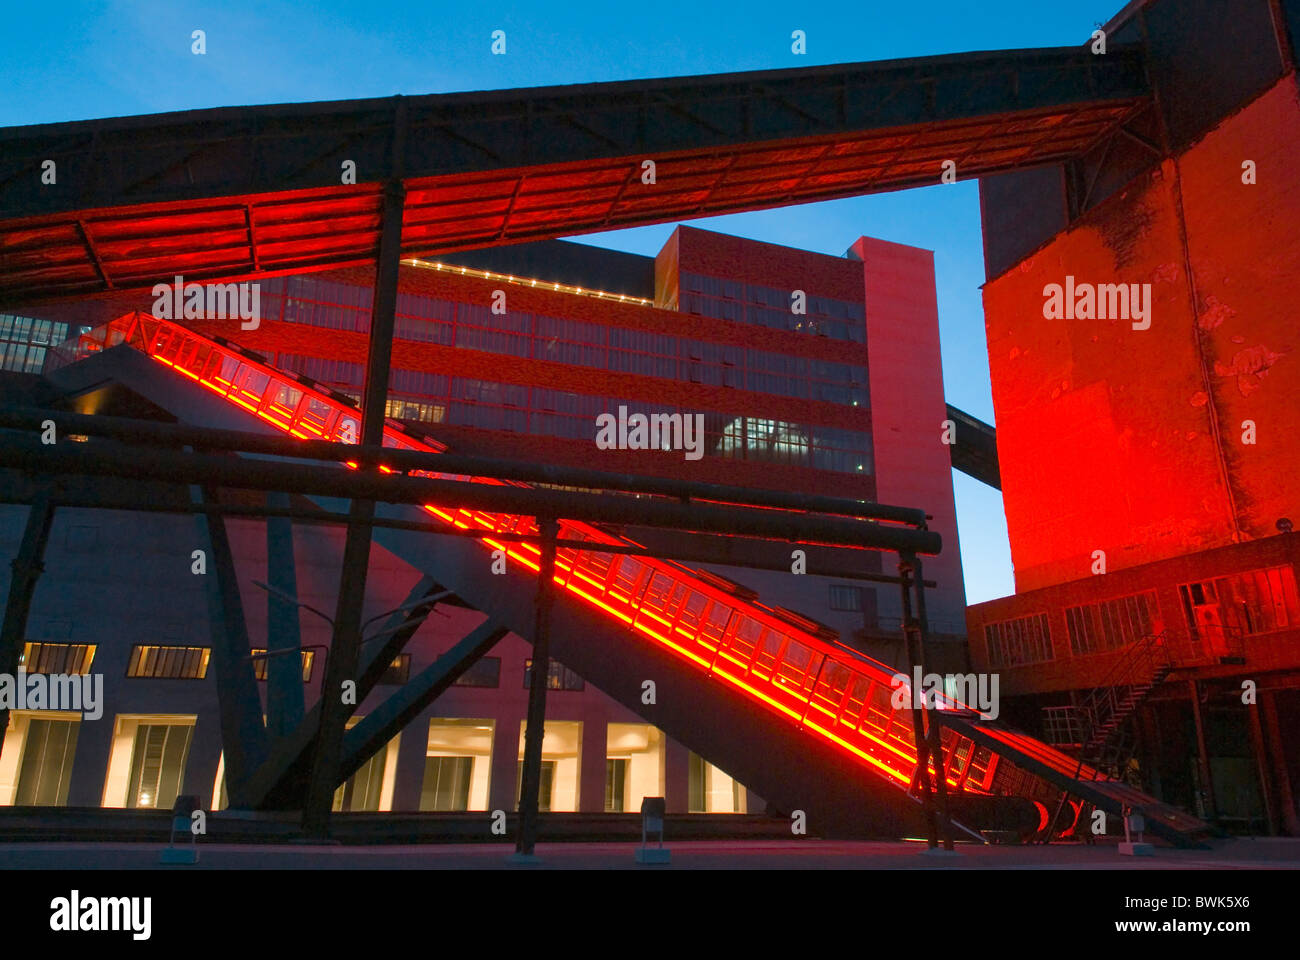 food pit Zollverein building construction neon red architecture industry modern Umnutzung at night night - Stock Image